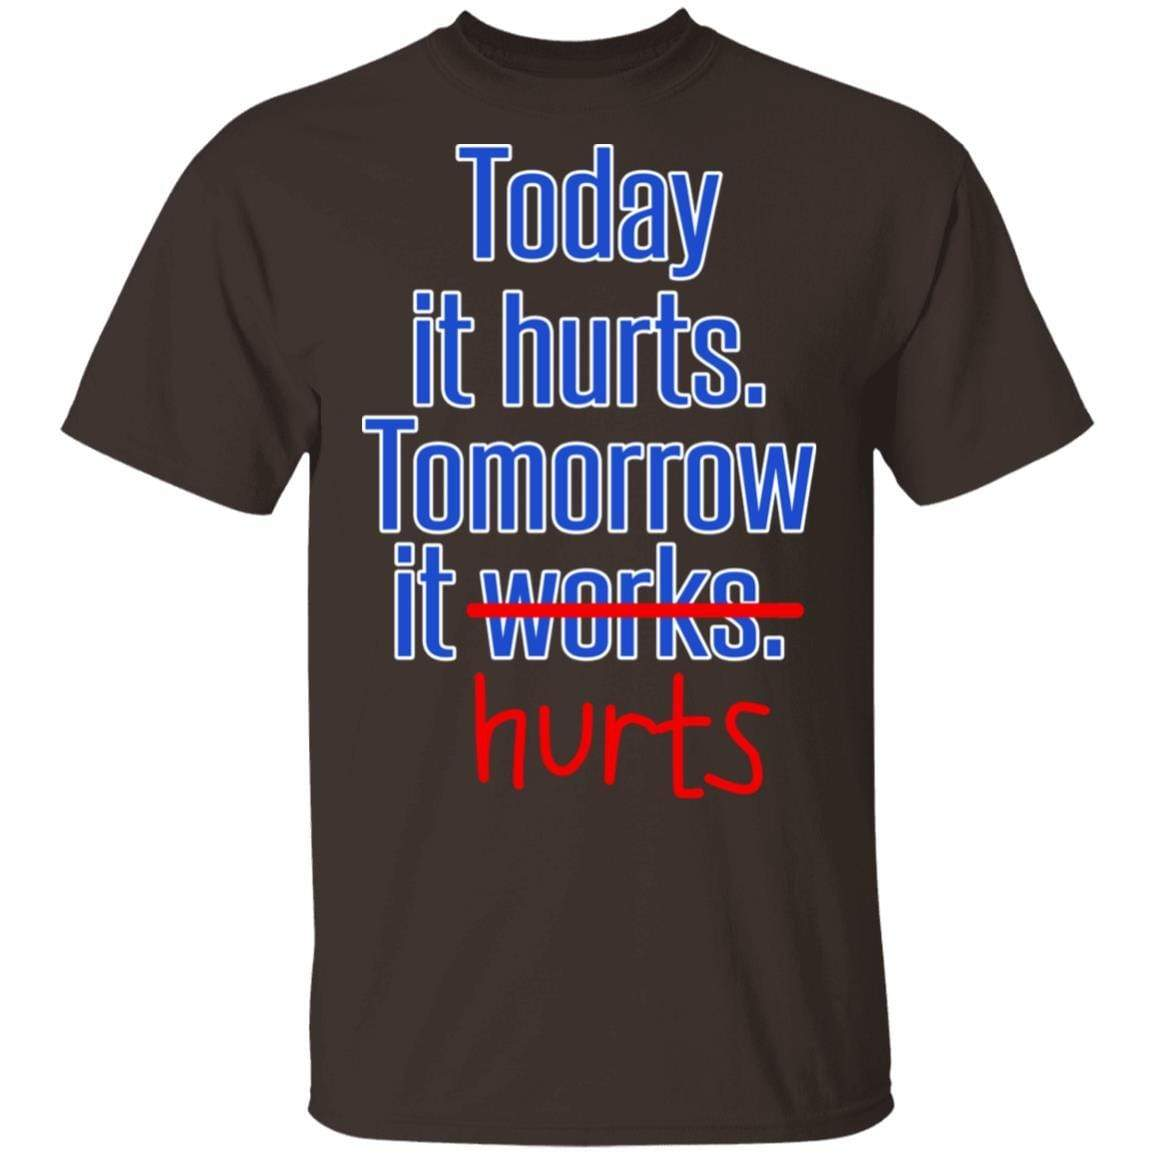 Today Is Hurts Tomorrow It Hurts T-Shirts, Hoodies 1049-9956-88445014-48152 - Tee Ript